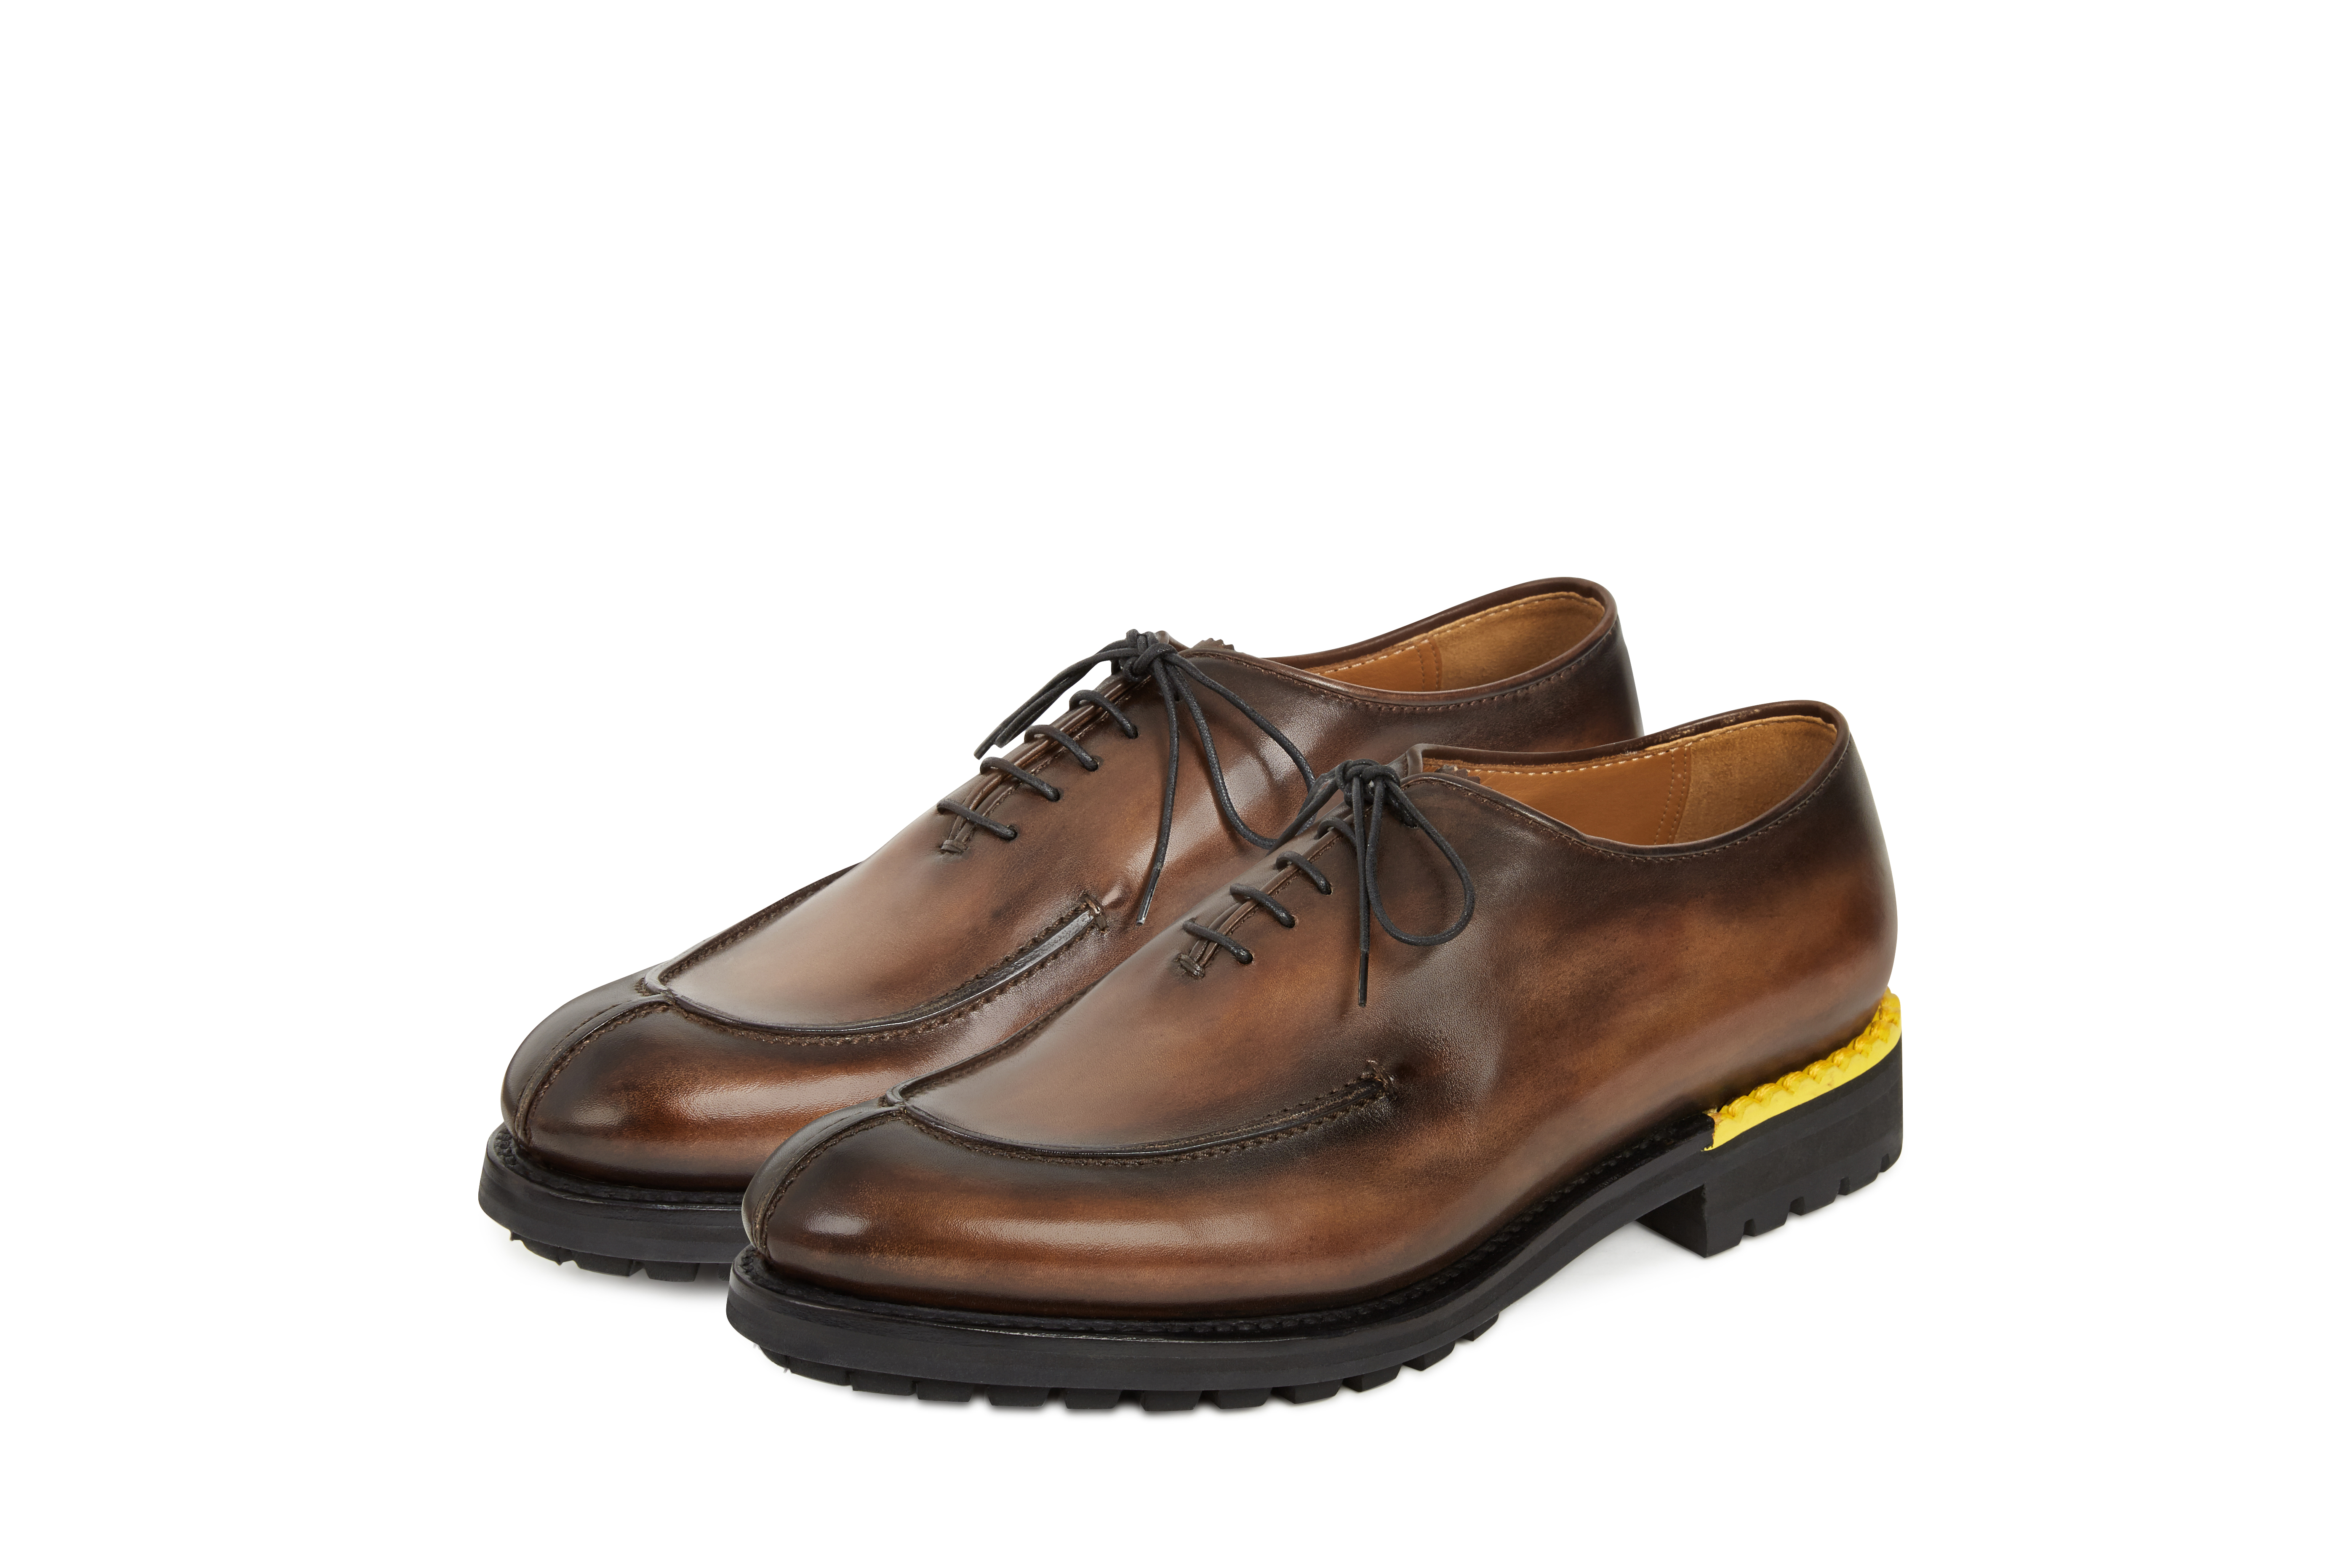 The classic Berluti lace-up leather oxford shoes